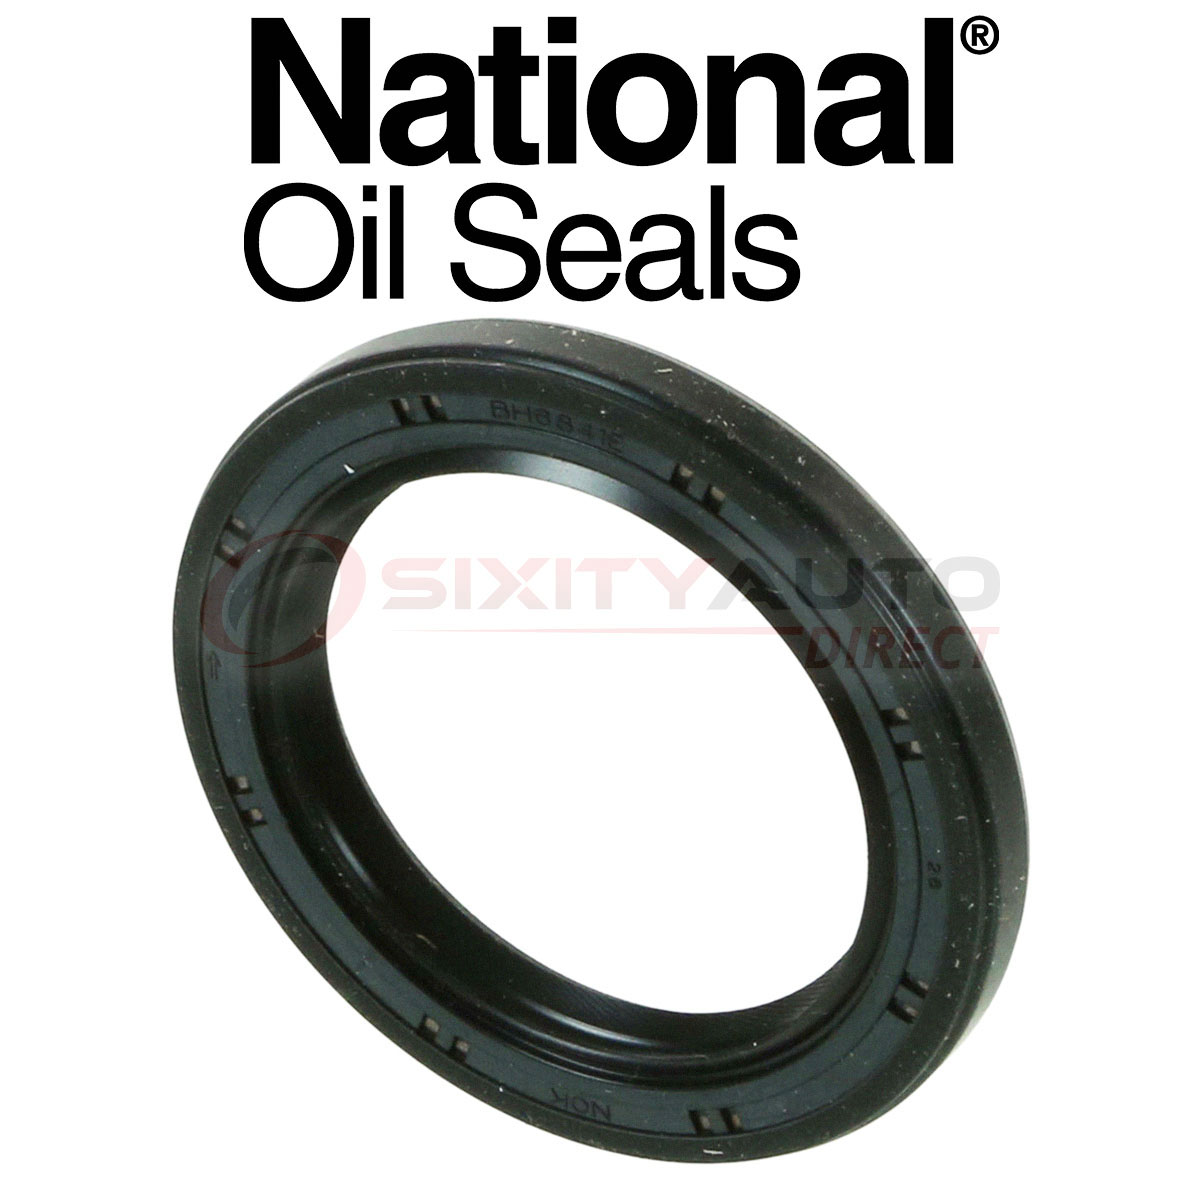 National Auto Trans Transfer Shaft Seal For 2007-2012